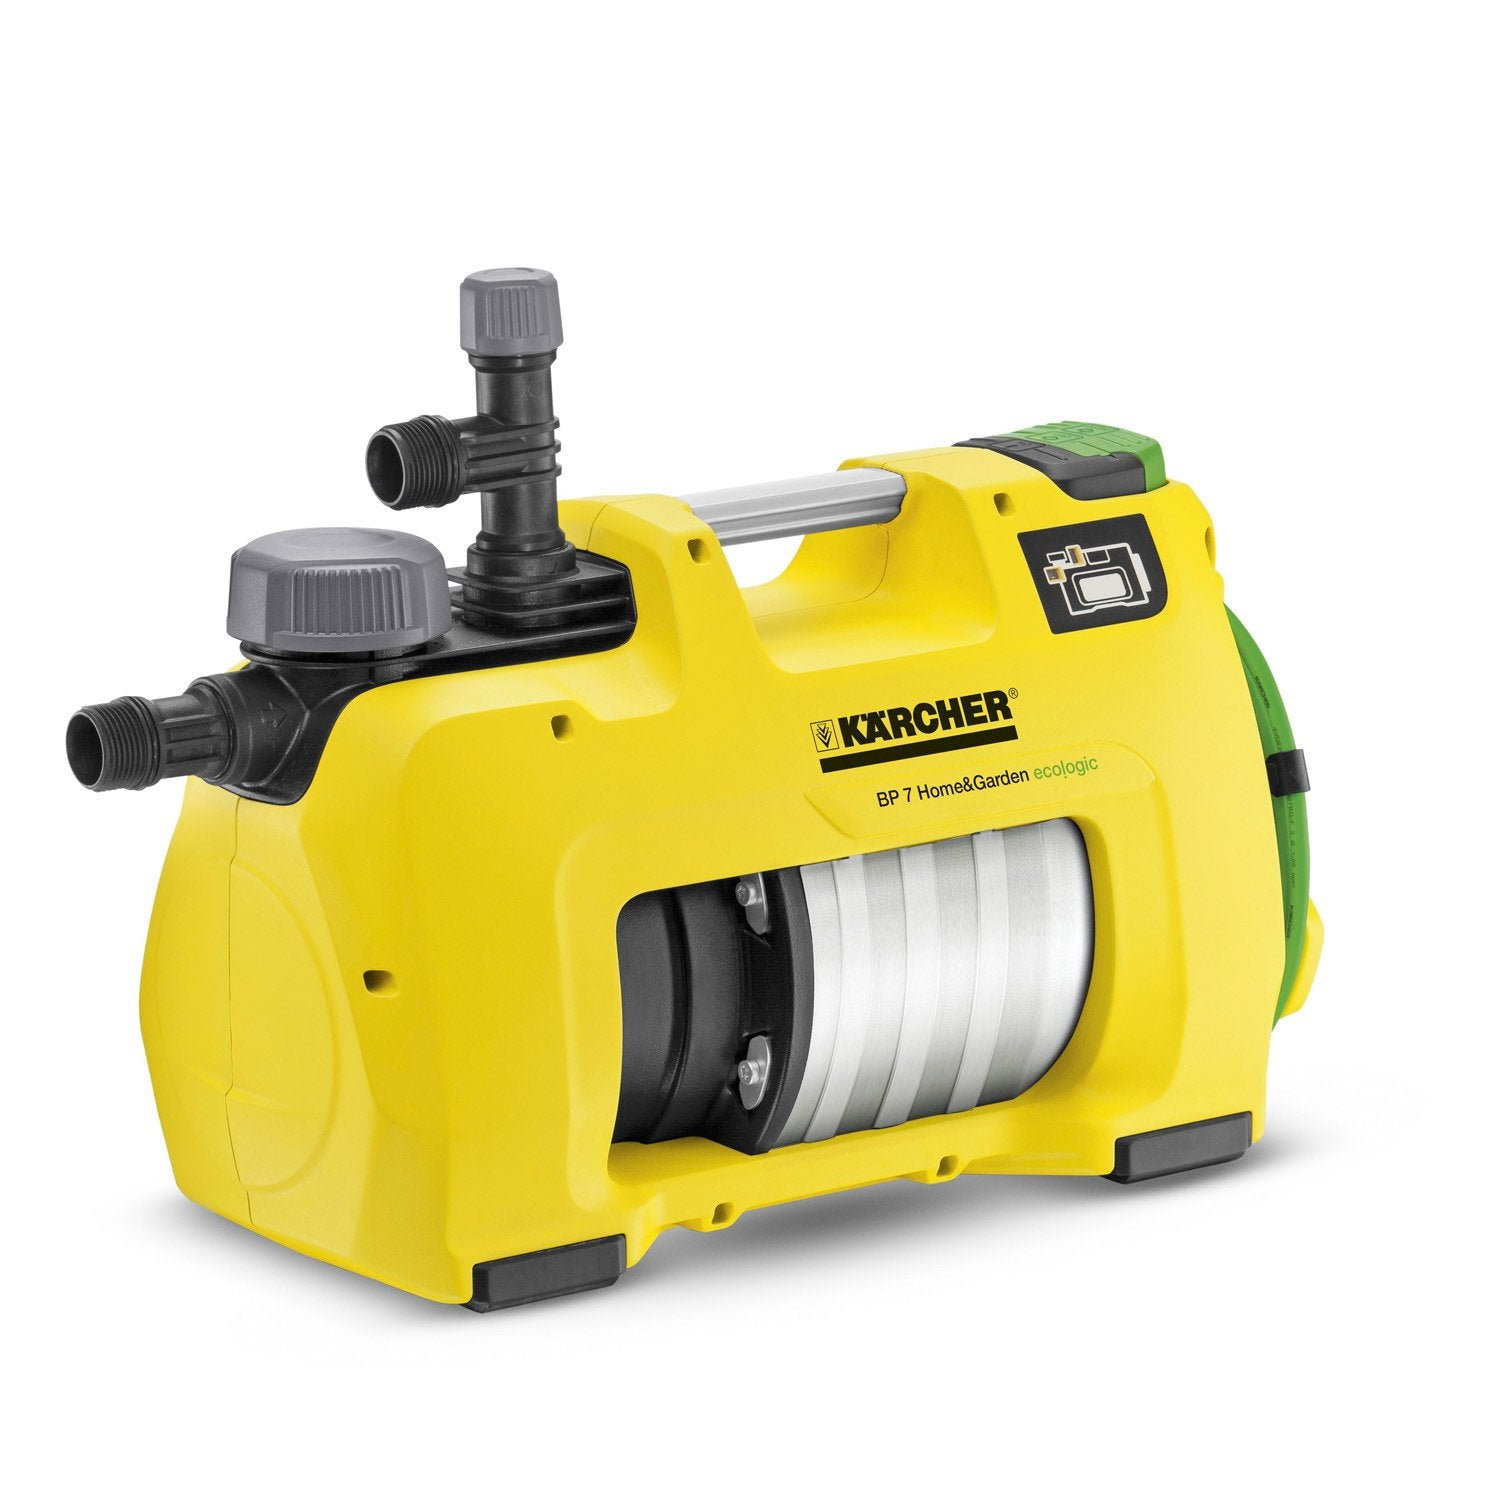 Pompe arrosage automatique karcher bp7 home and garden - Hidrolimpiadoras karcher leroy merlin ...